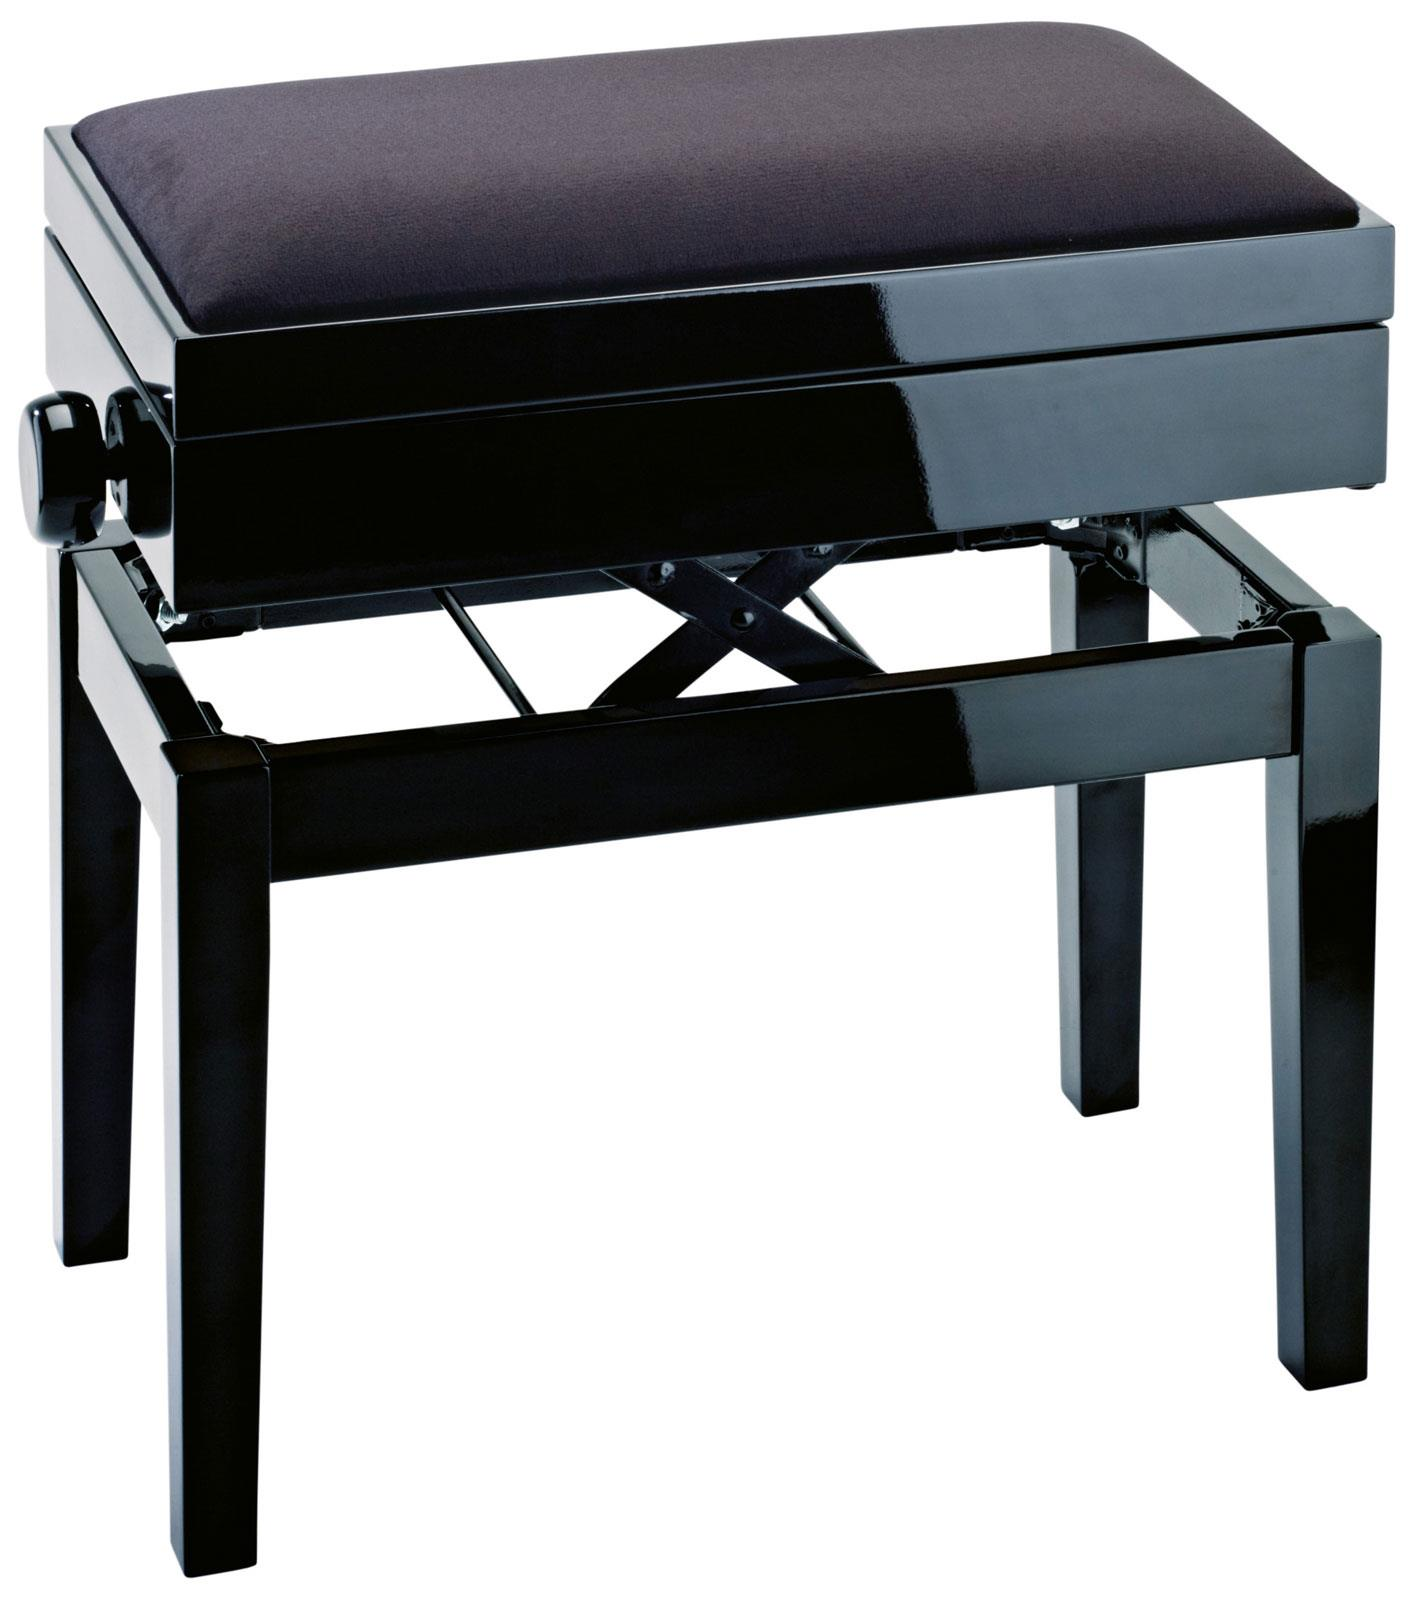 Konig meyer 13950 piano bench black velvet with storage keymusic Velvet storage bench